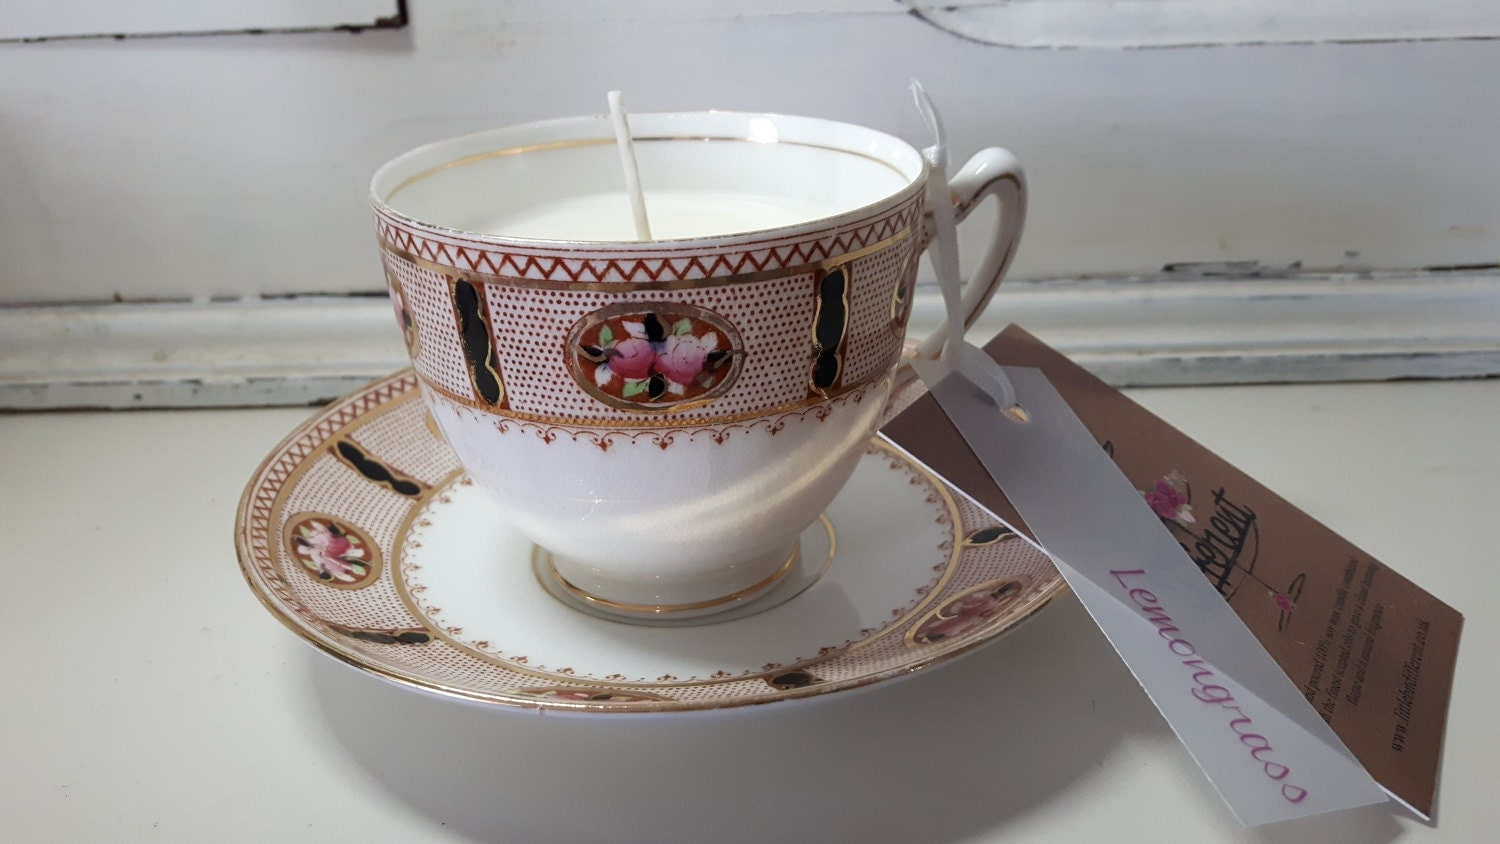 Hand poured scented soy wax  vintage Paragon tea cup candle, scented with  lemongrass.